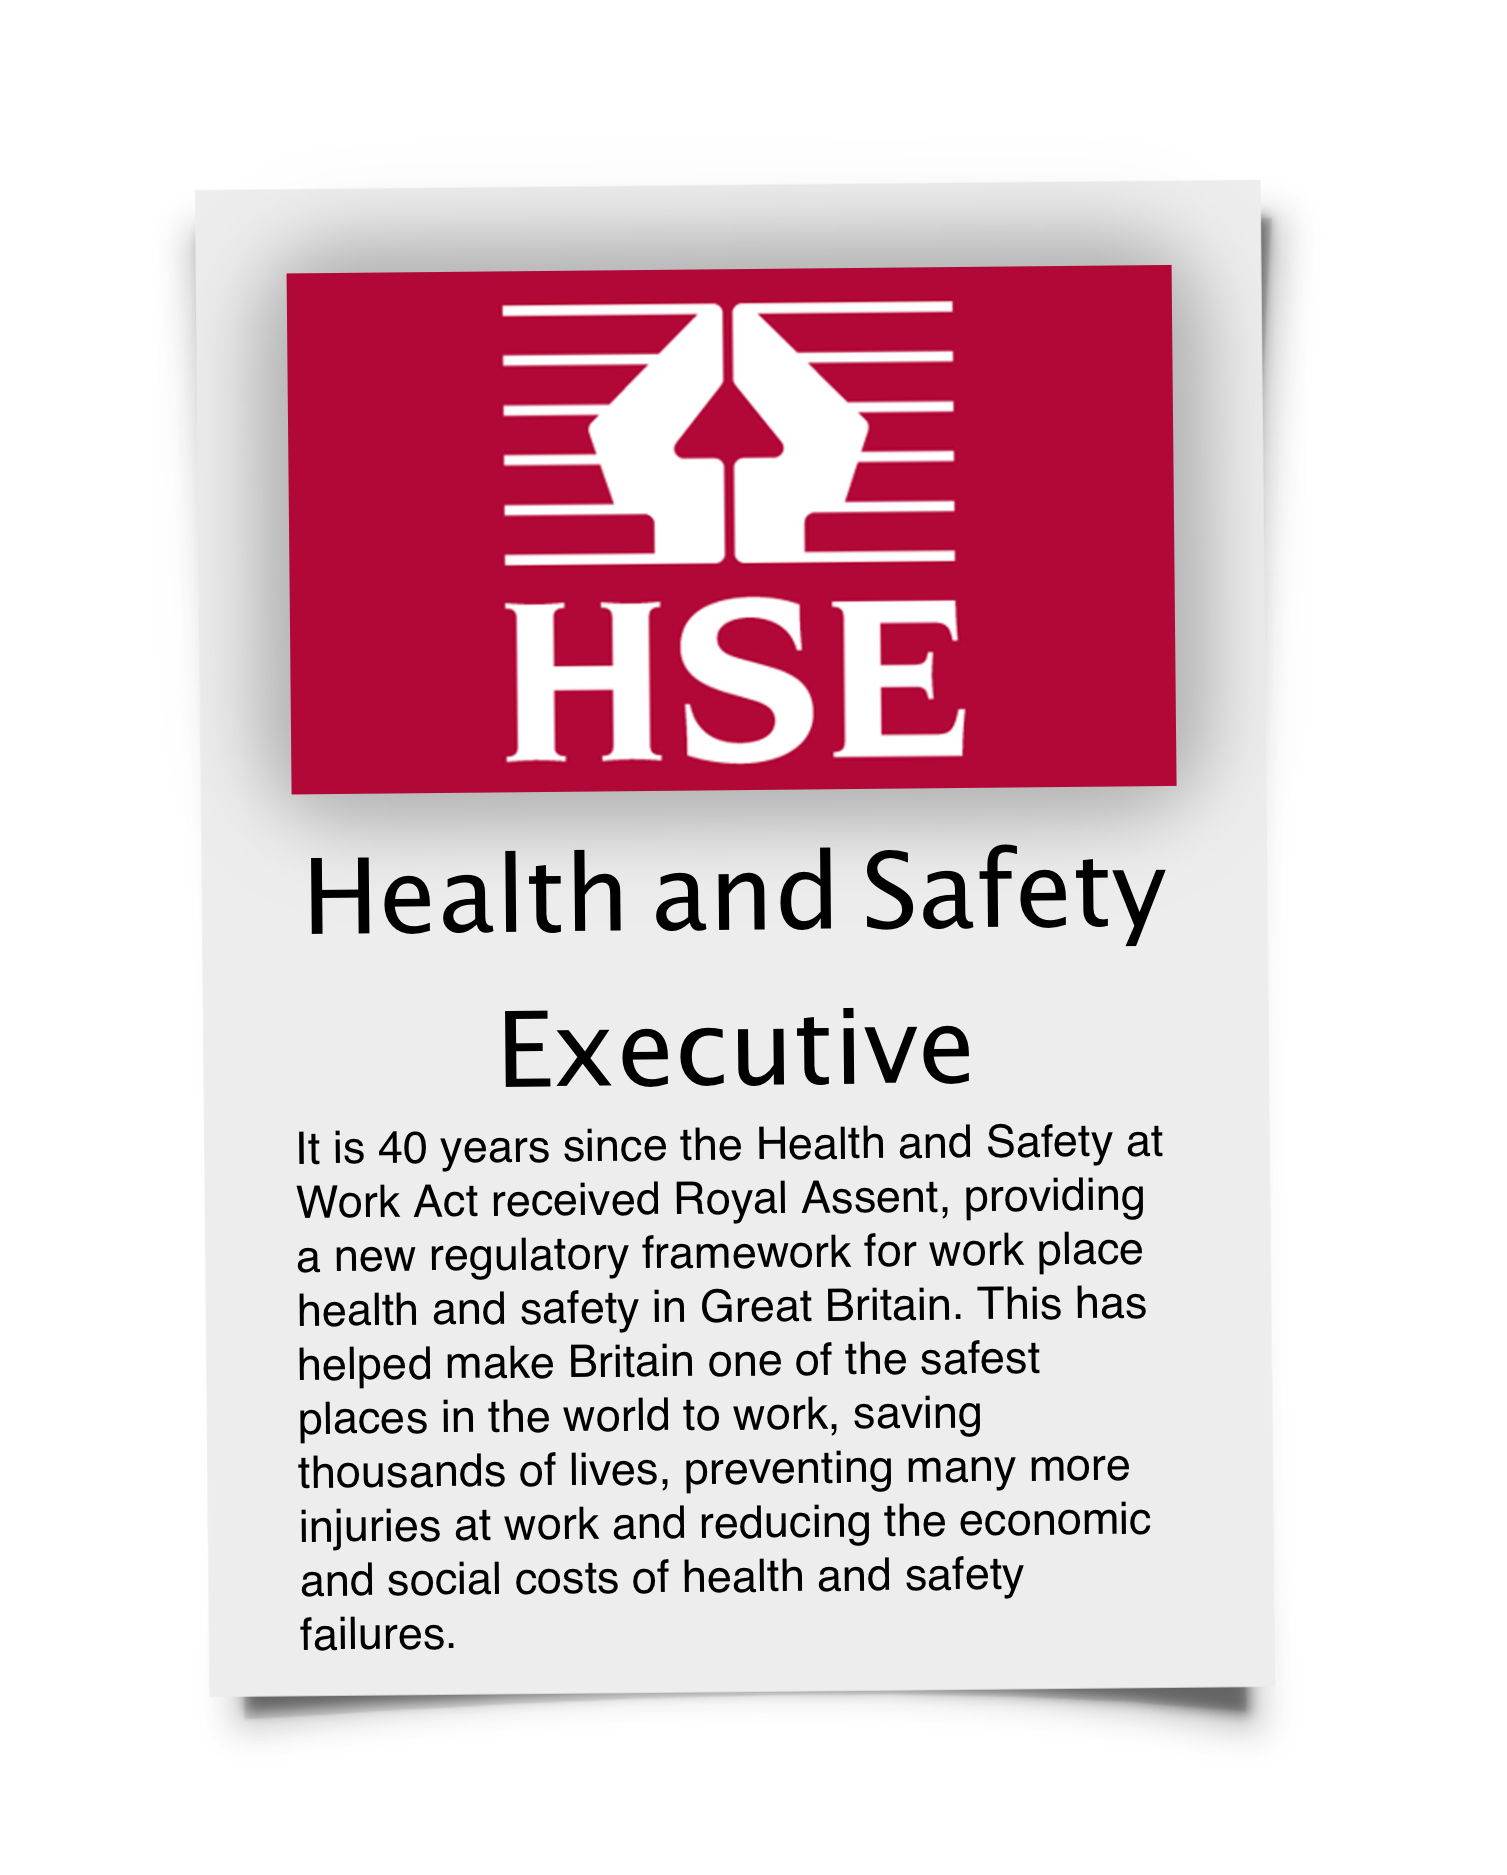 health and safety policy essay 13092018 health and safety assignment policy after i do this essay i never want to speak about metaphors ever again advertisements essay writing reports writing a good thesis statements for an essay maps chrysalids david storm character sketch essay.